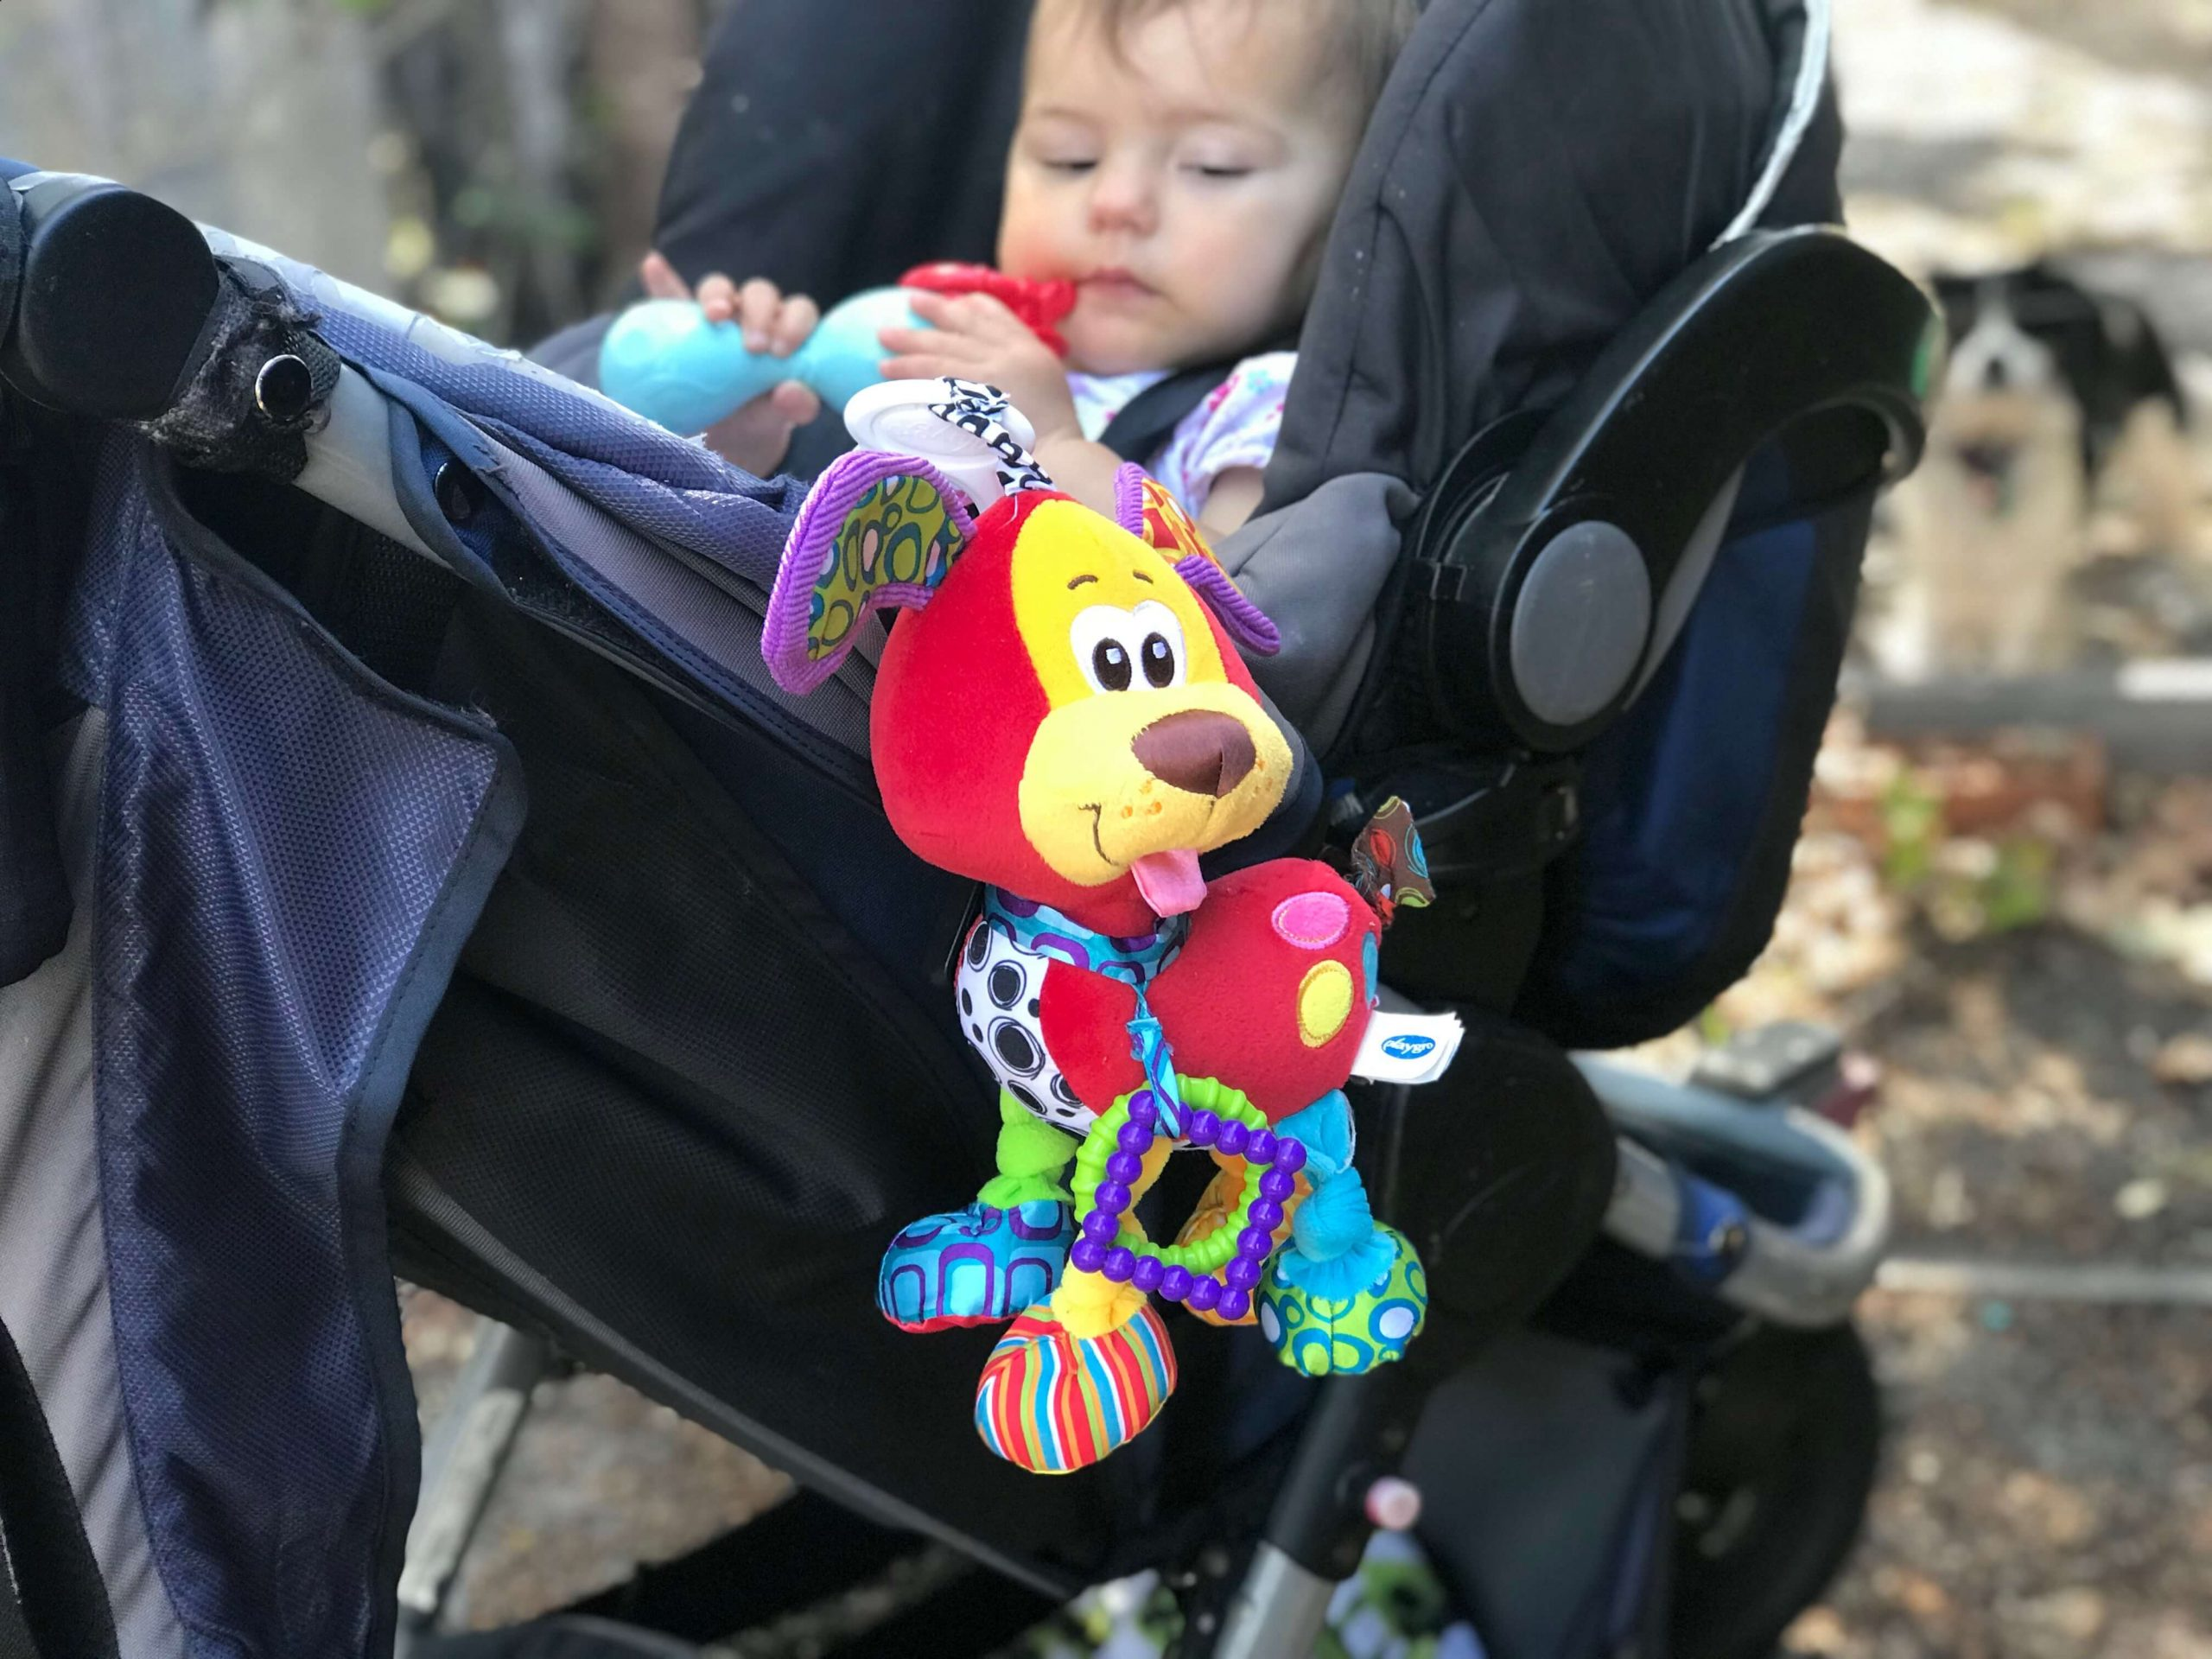 Best Travel Toys For 1 Year Old